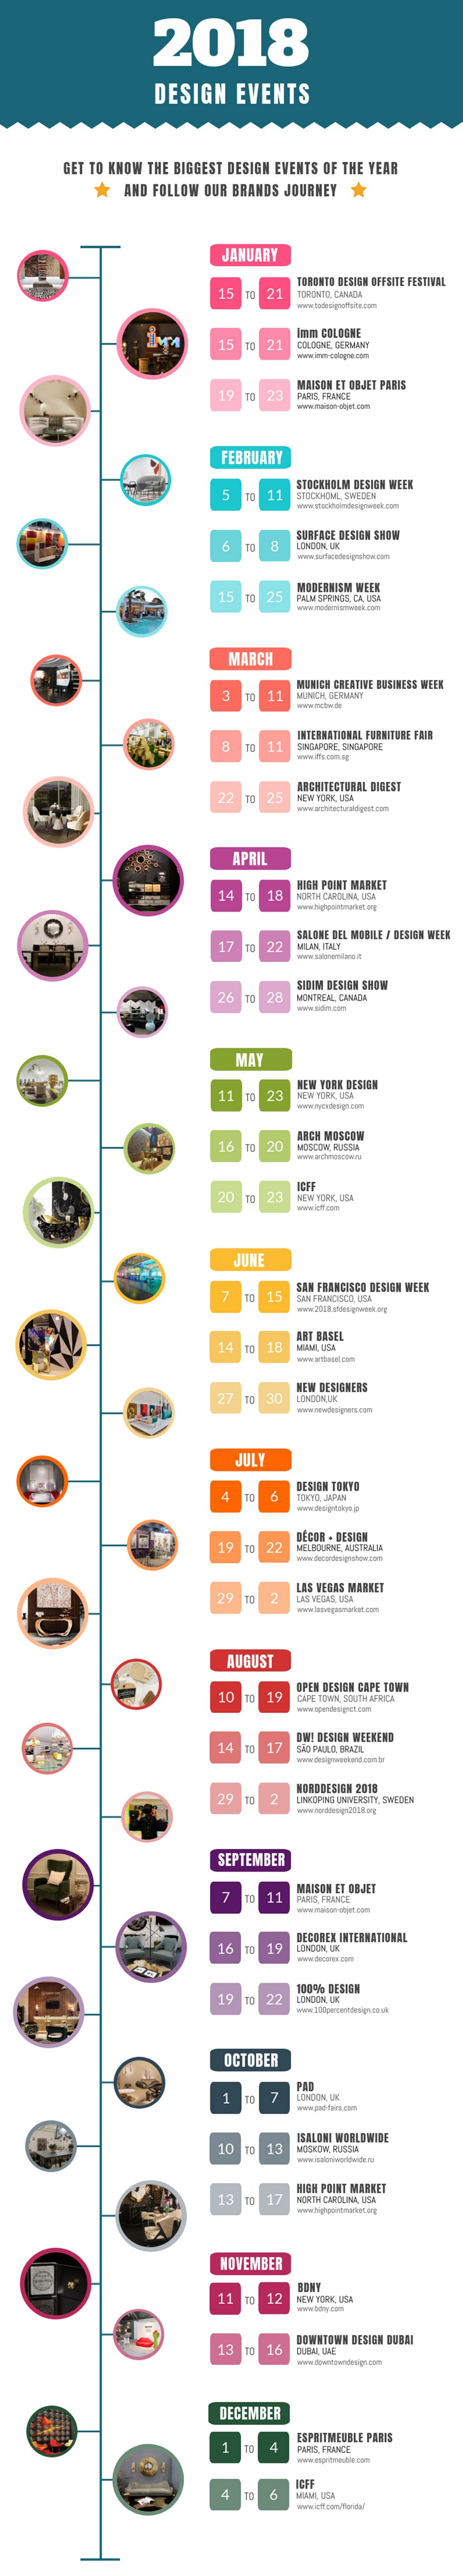 Explore The Infographic With The Best Design Events in 2018!